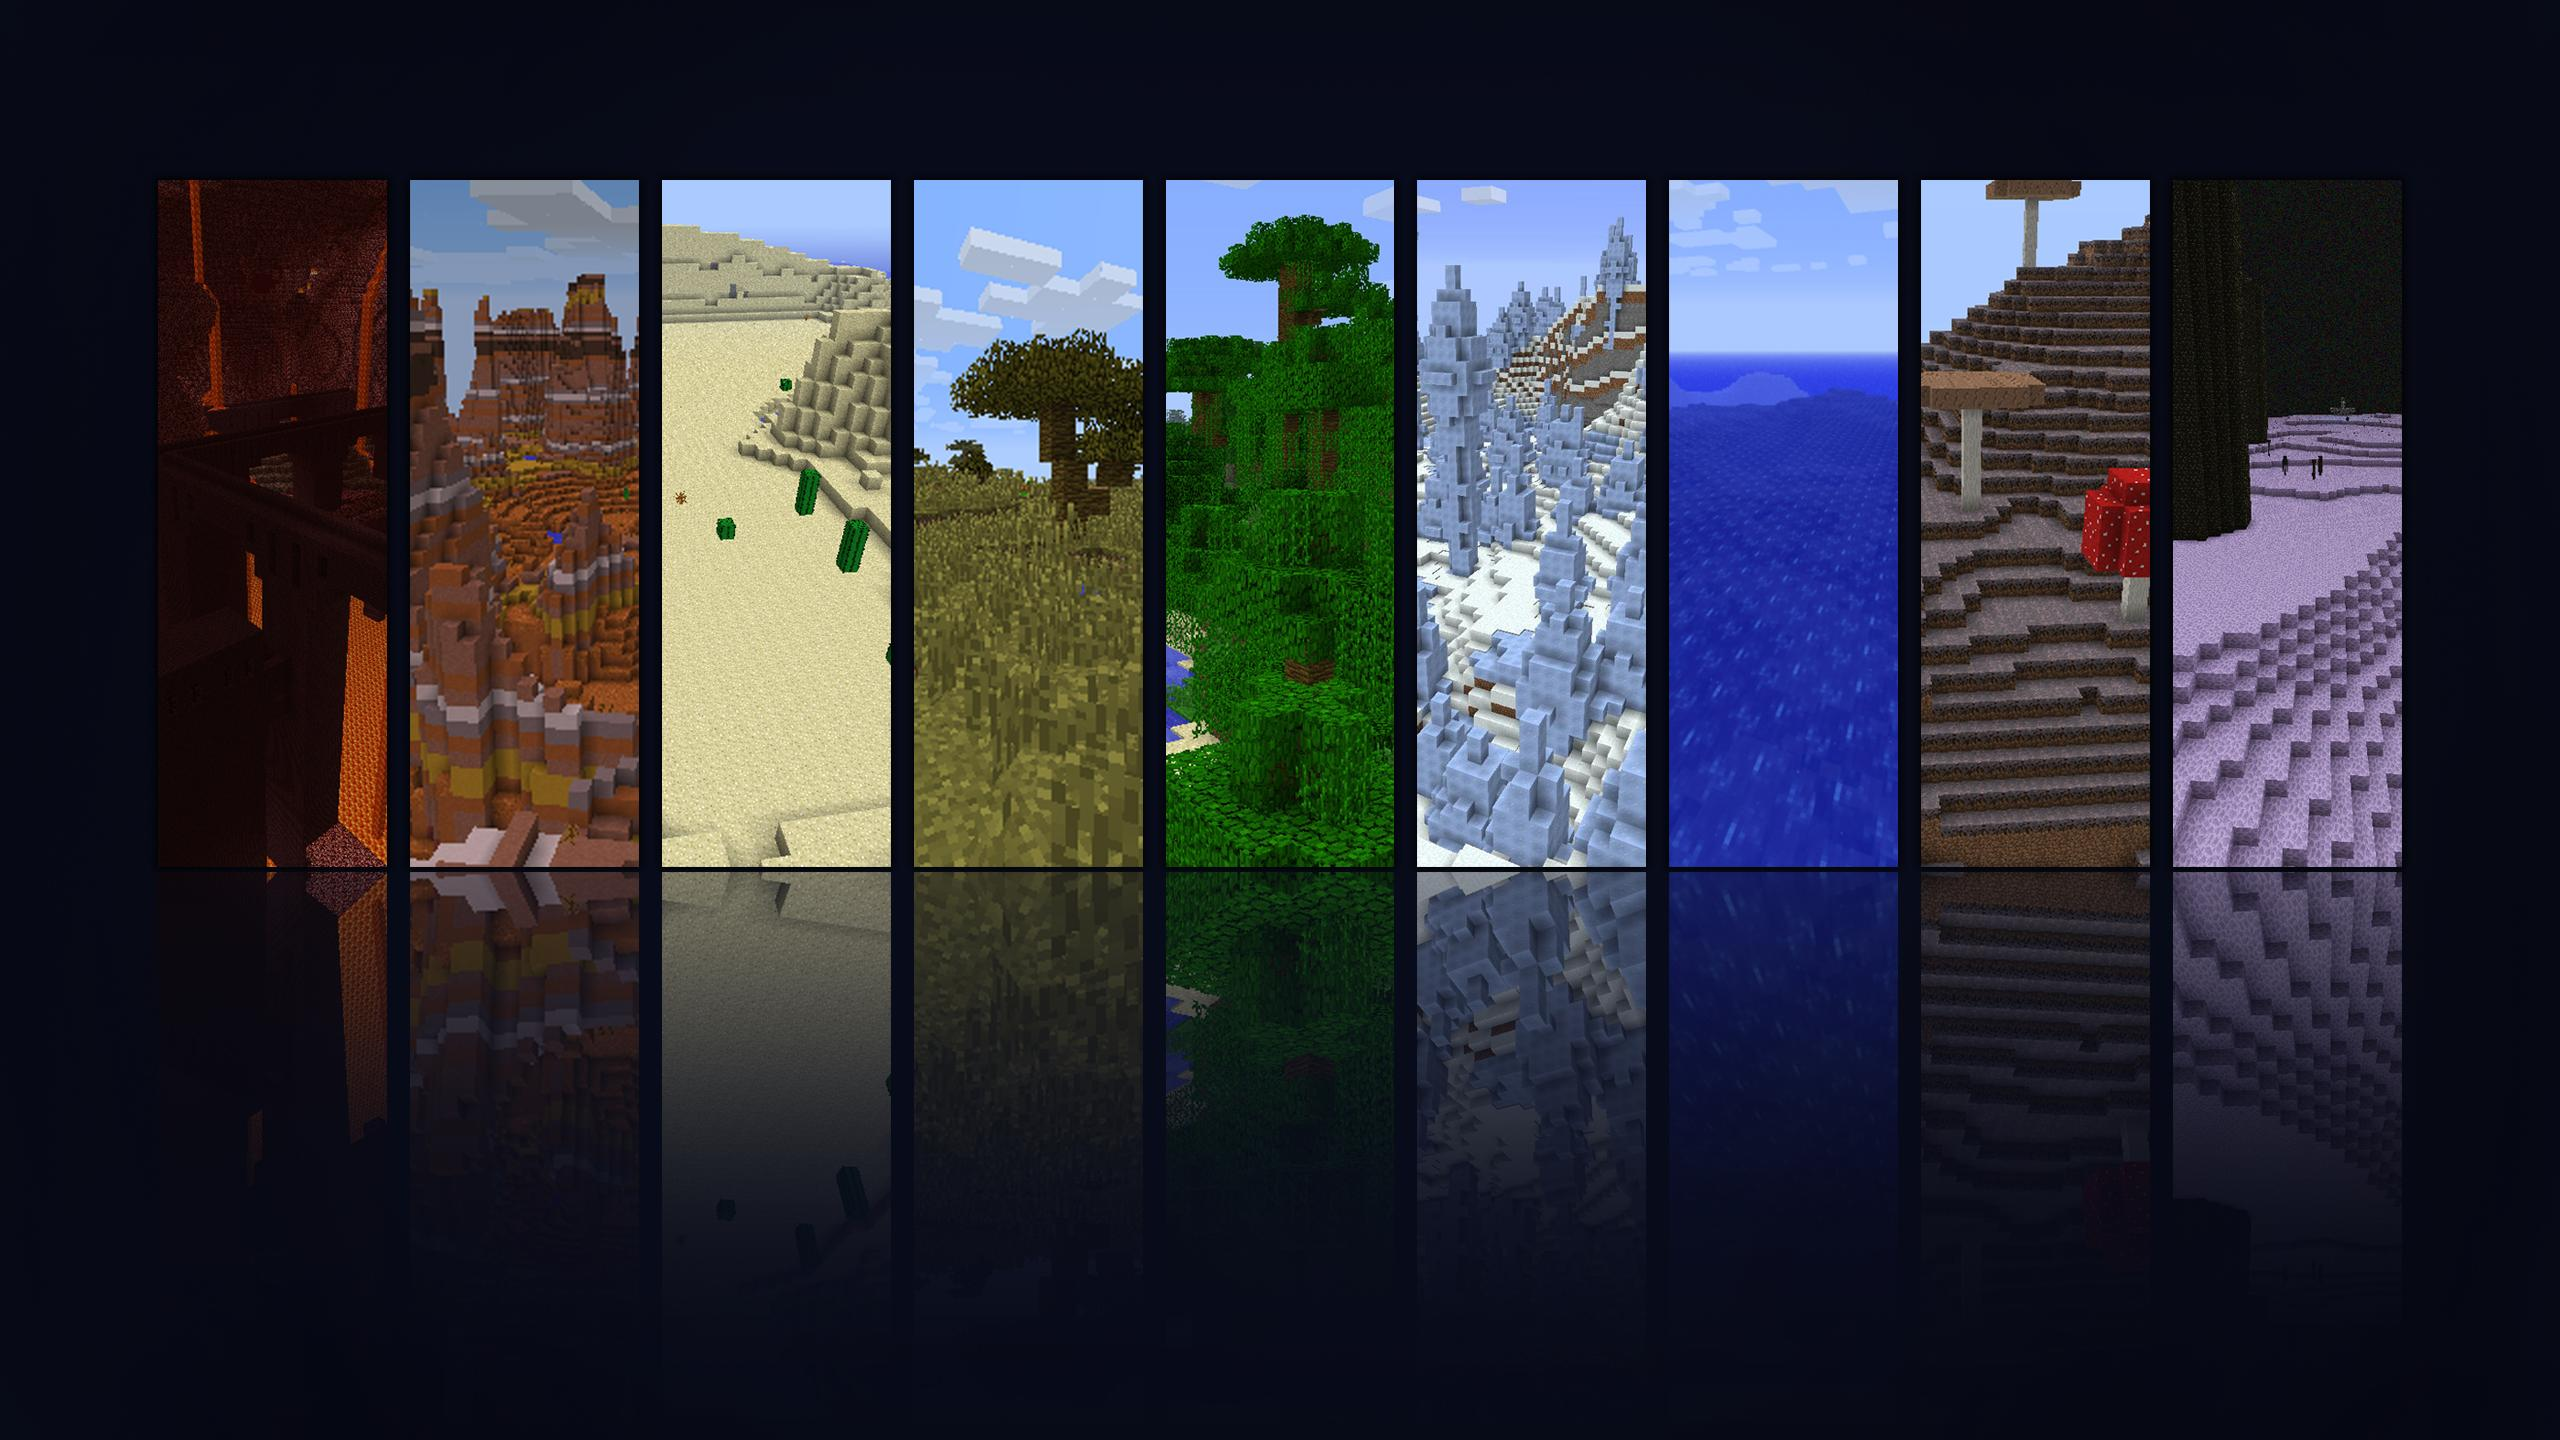 1680x1050 Minecraft Desktop Wallpaper Minecraft Blog. 1680x1050 Minecraft Desktop Wallpaper Minecraft ...